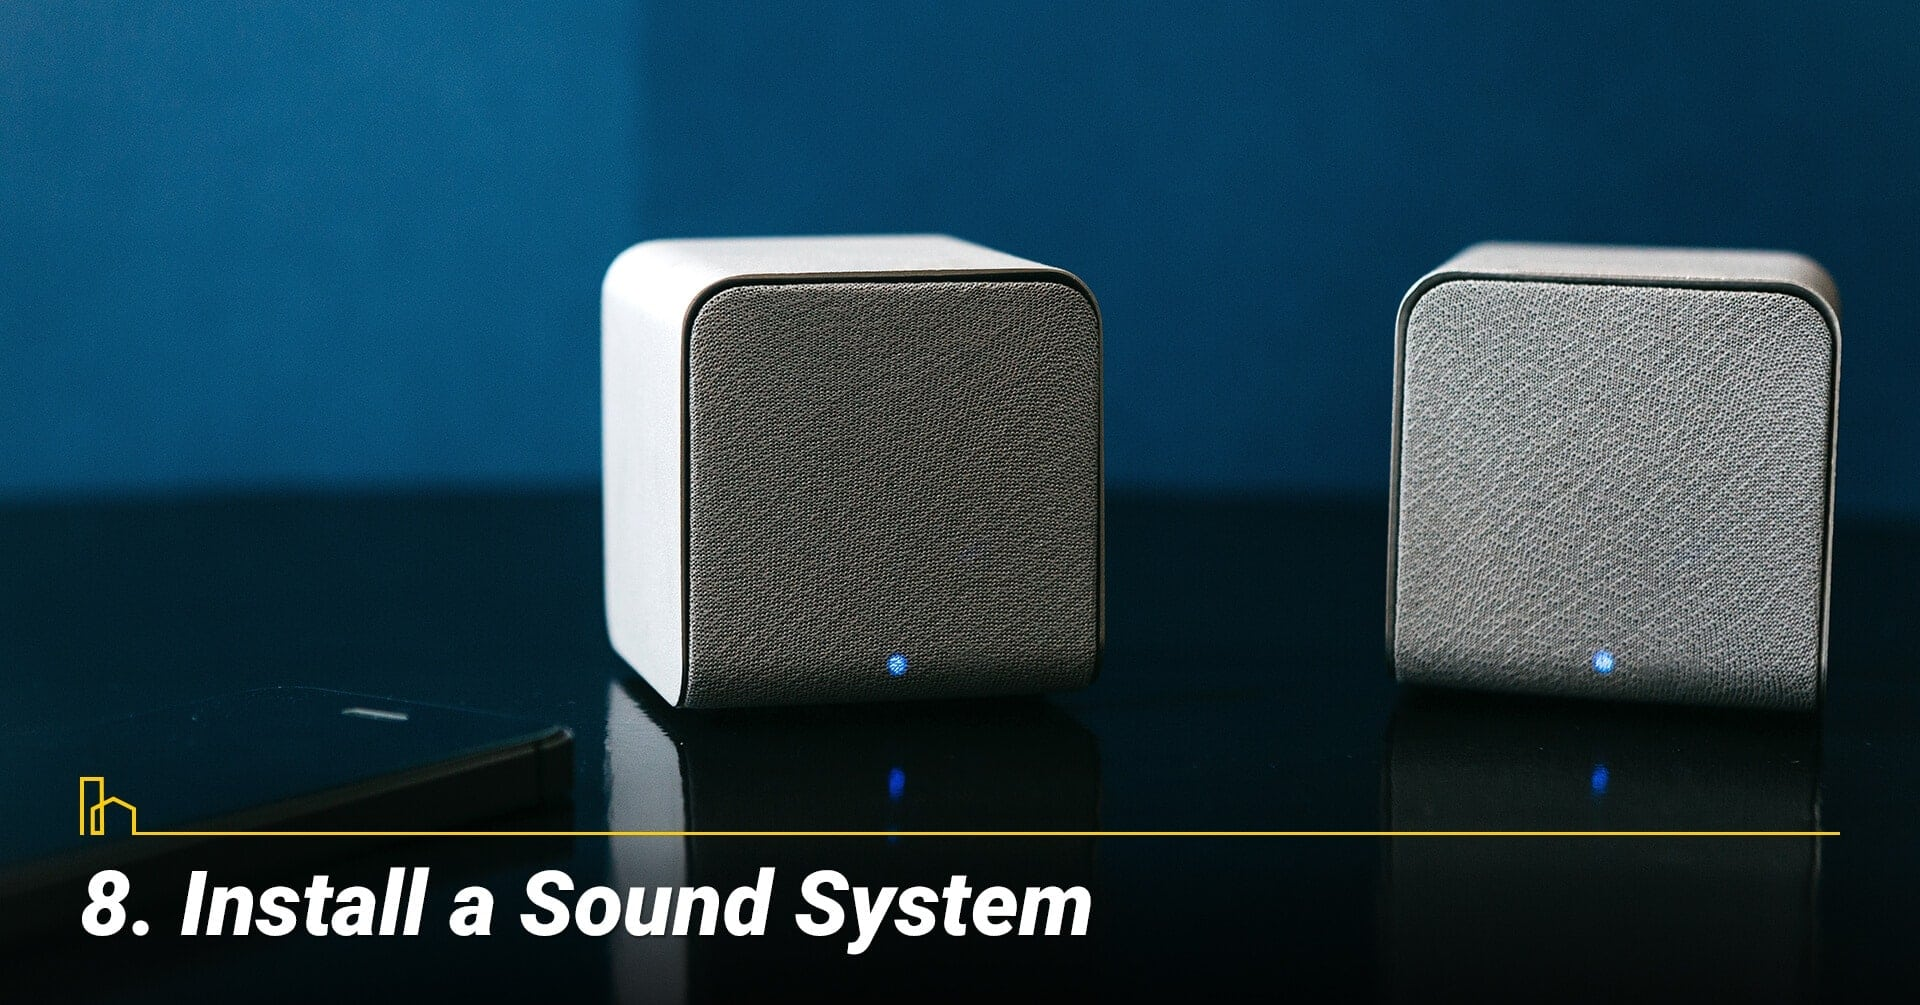 Install a Sound System, listen to music to relax